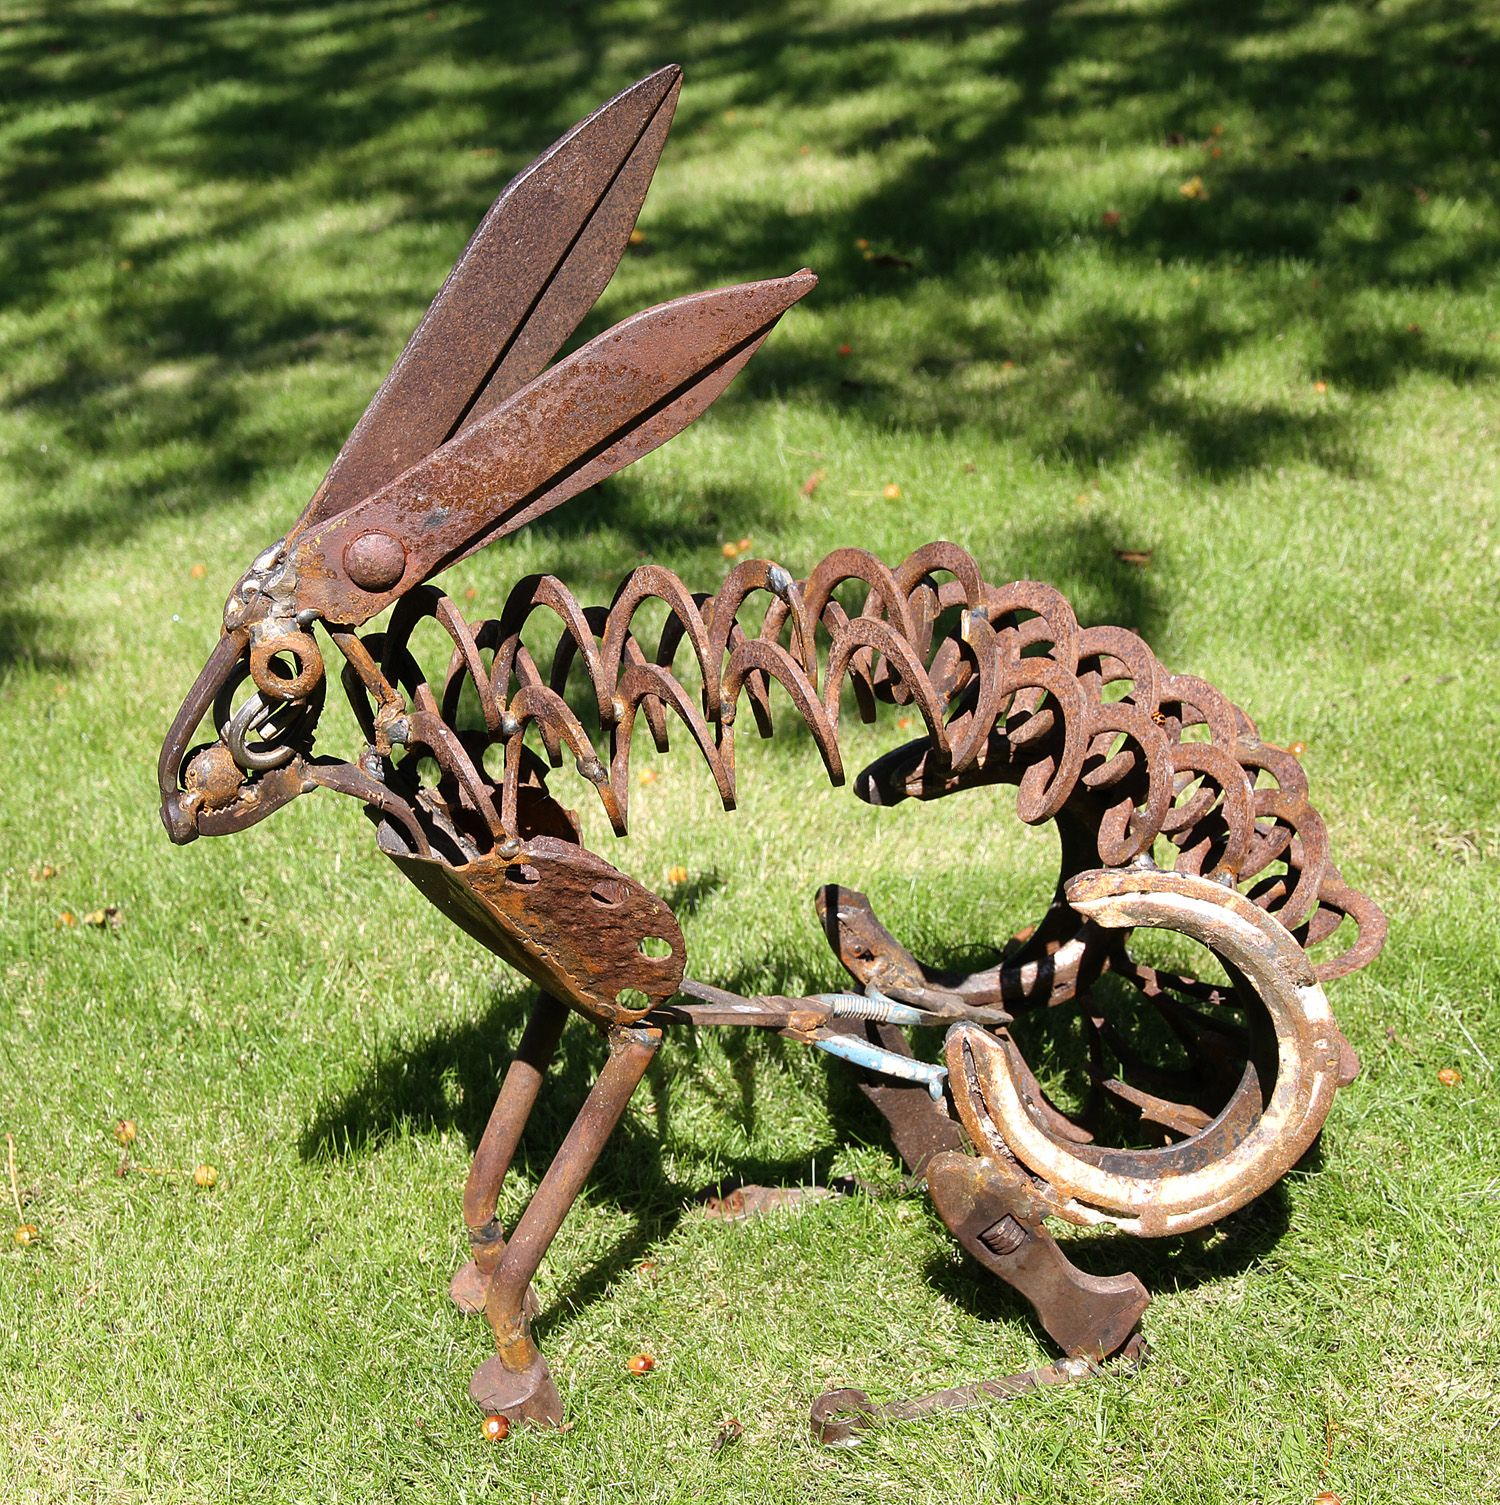 Metal yard sculptures hang on a minute rusty old garden for Lawn ornaments for sale